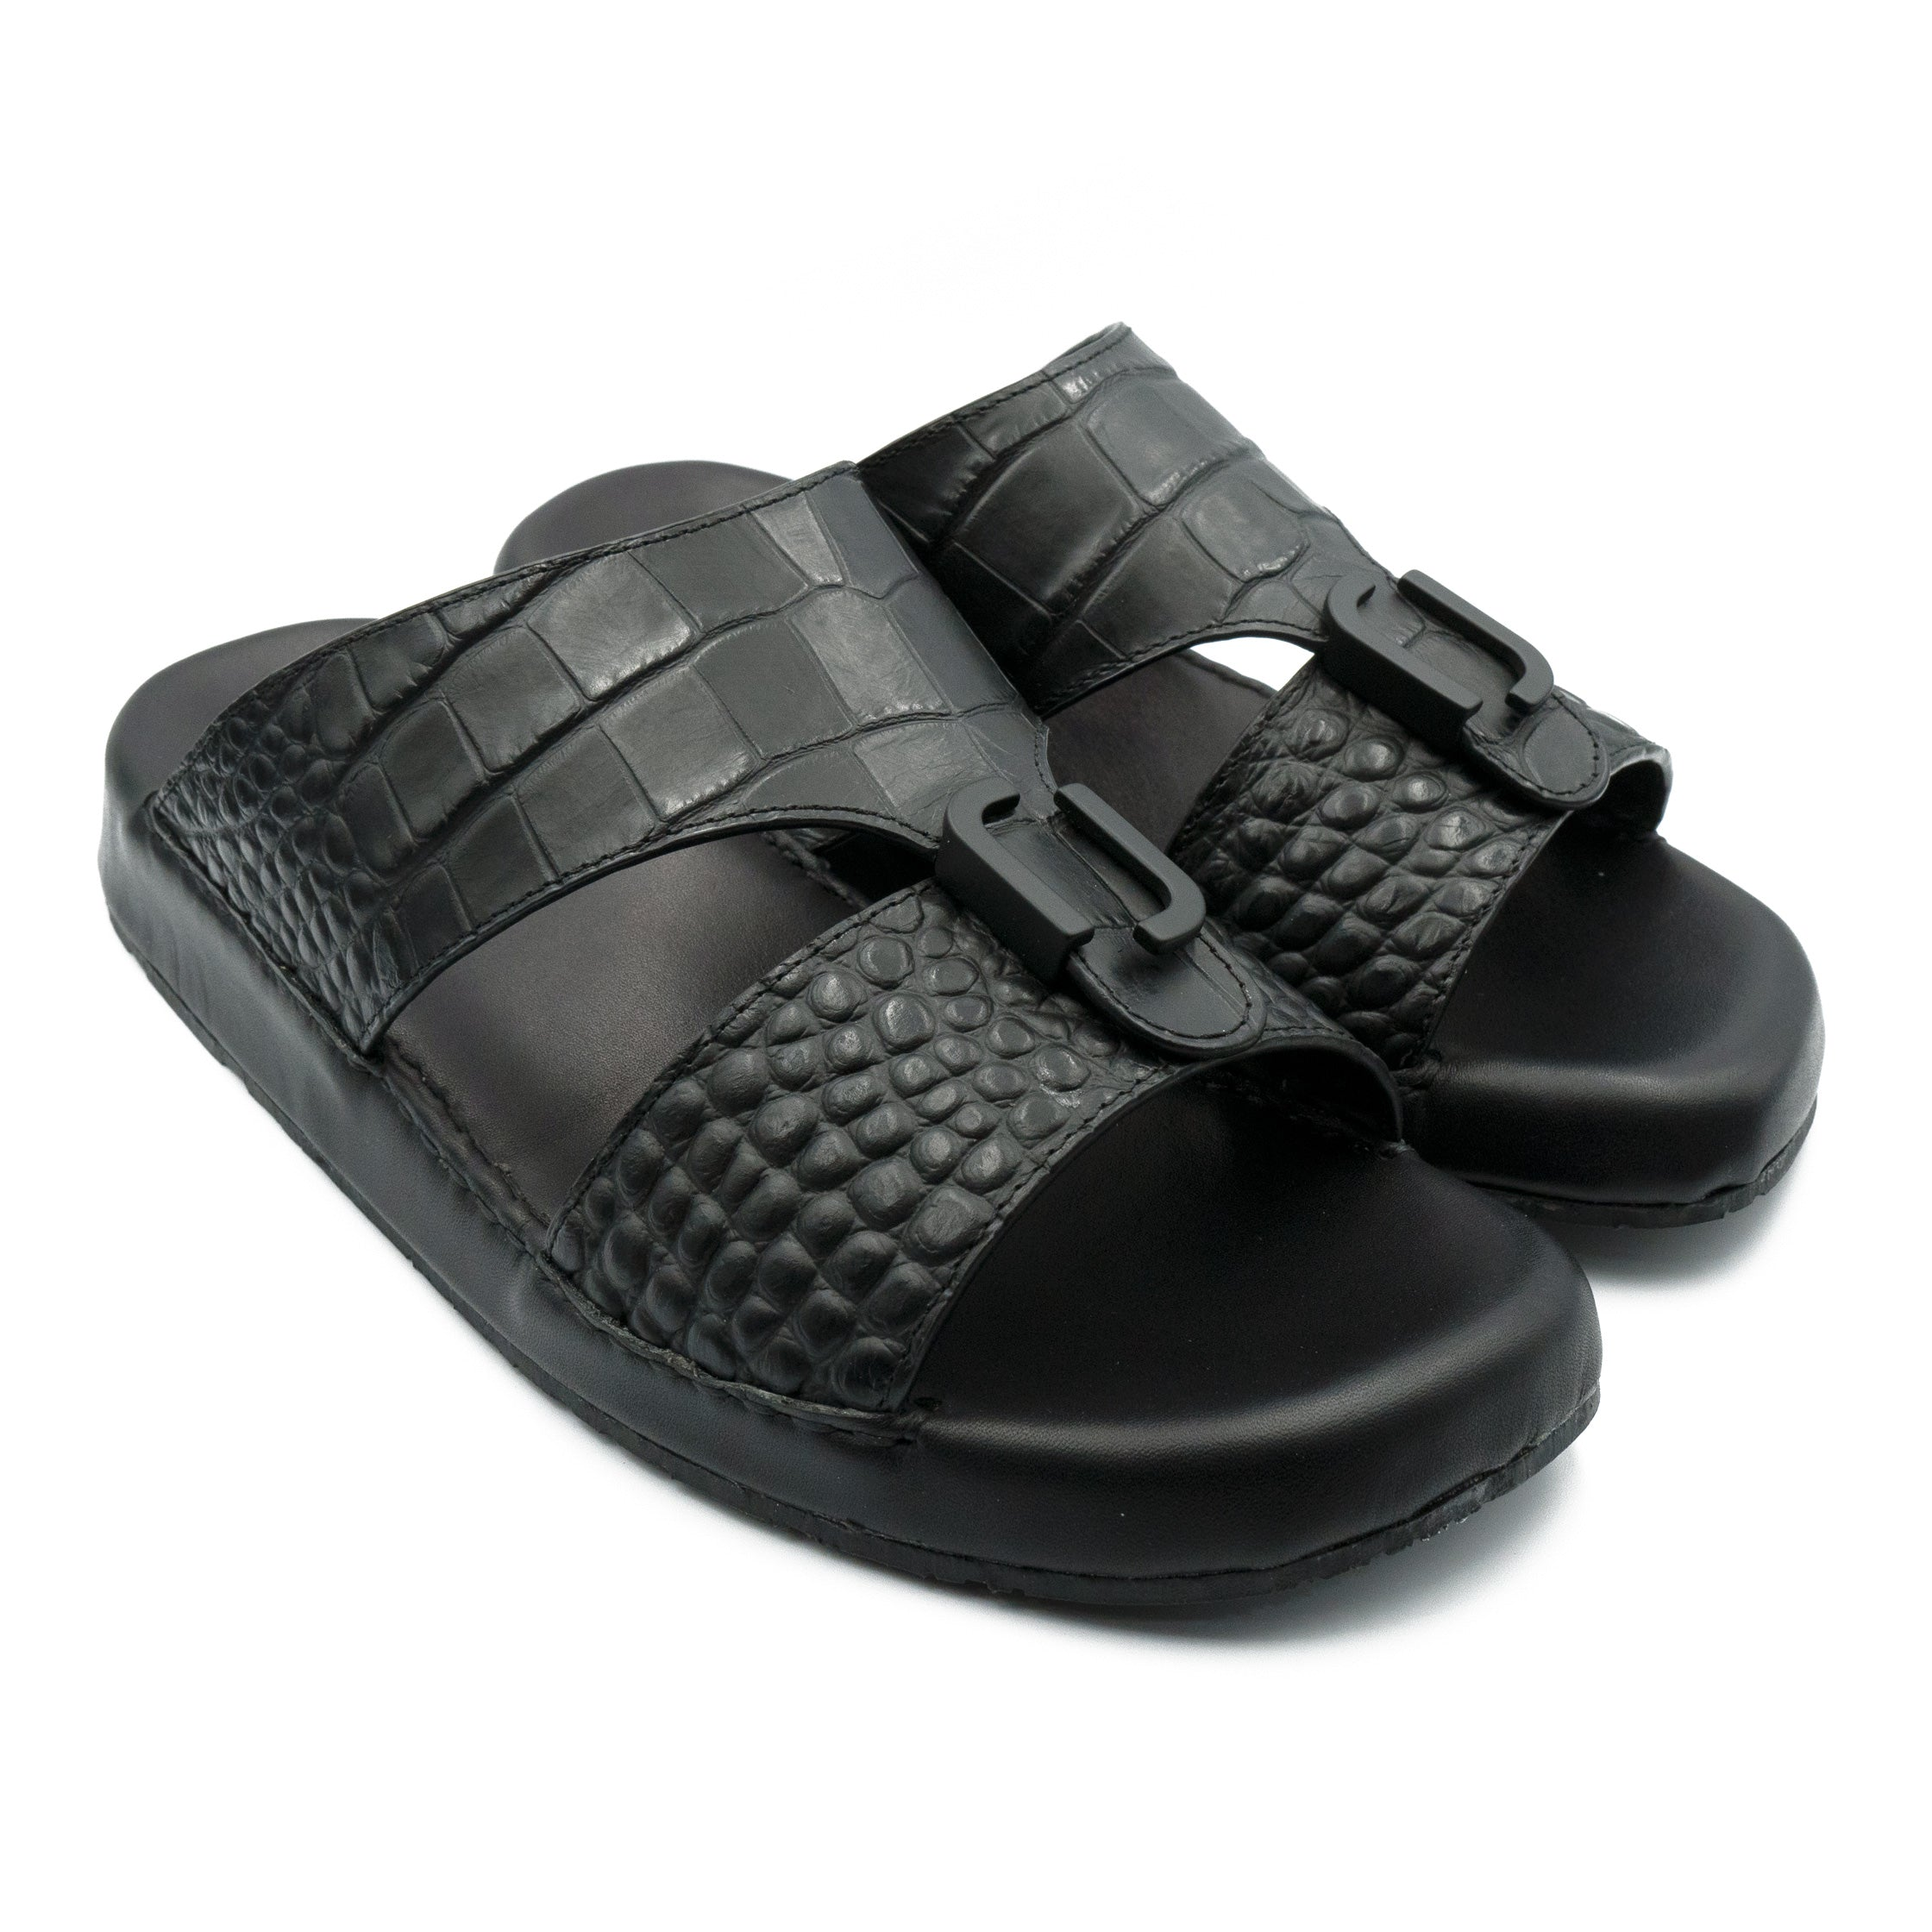 Black Matt Croco (REC01) Arabic Sandals